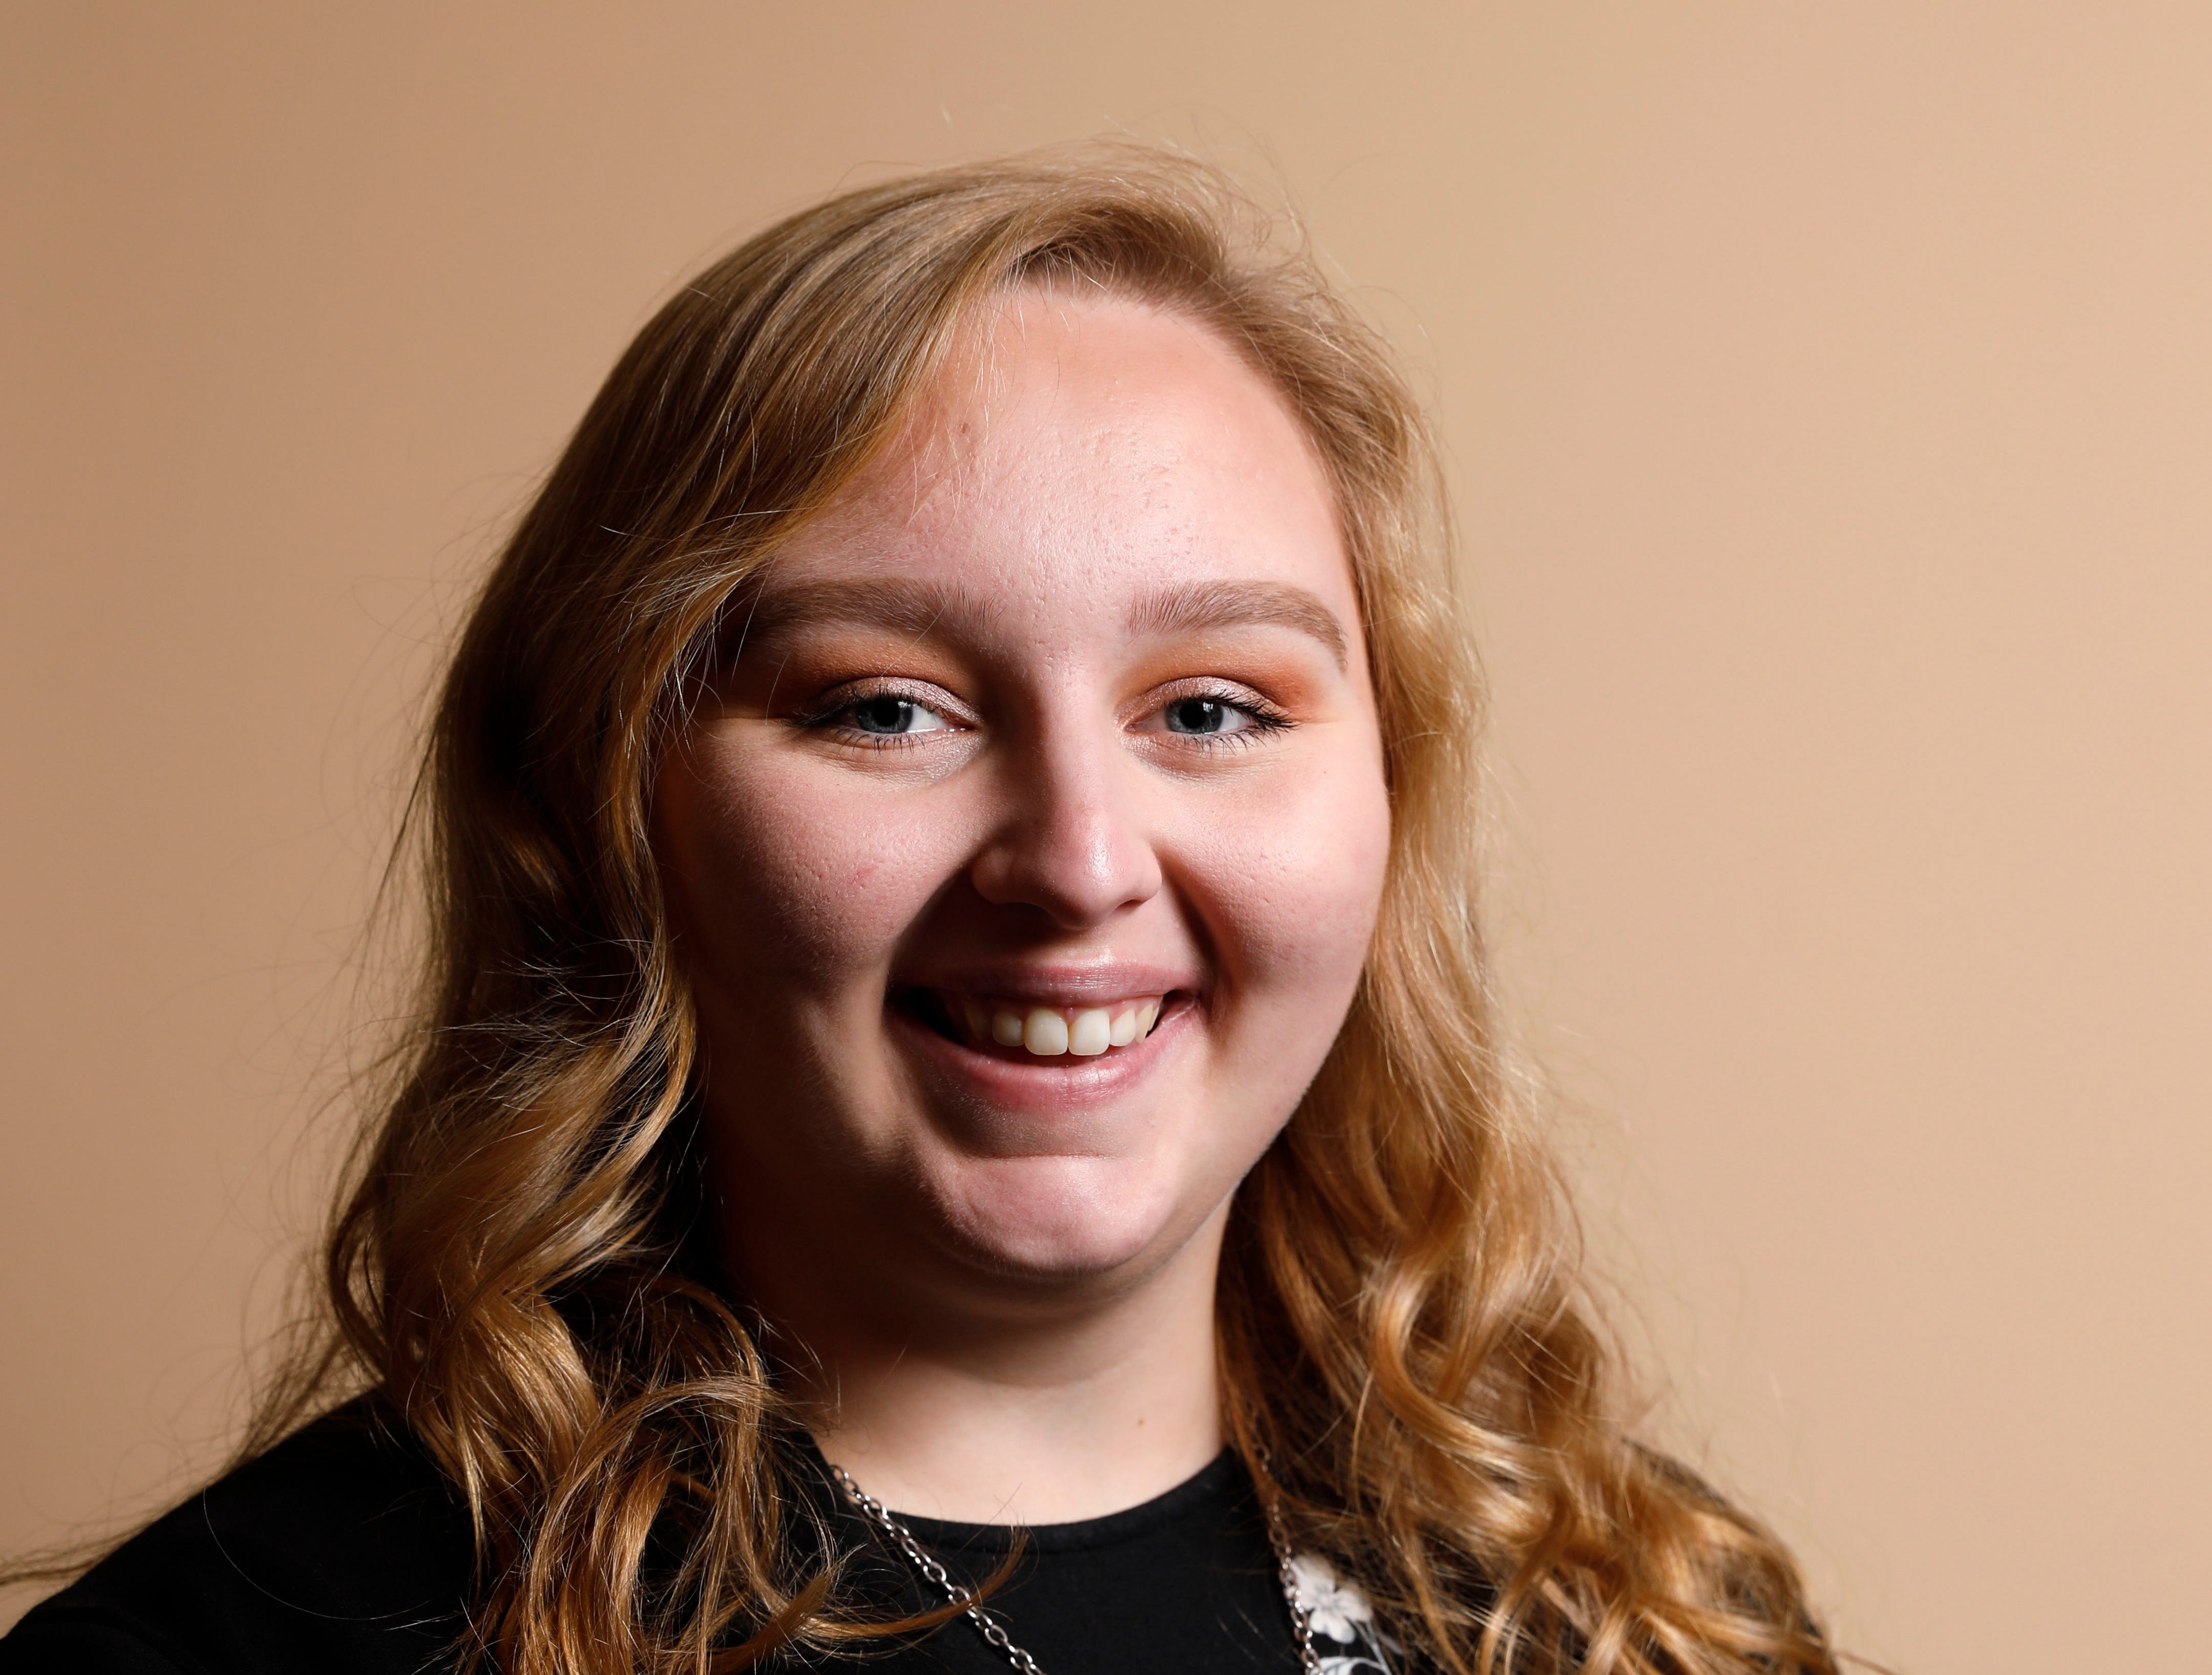 Corinne Somers, 17, daughter of Randy and Deanna Somers. She attends Canal Winchester High School and is a member of Green Extreme 4-H Club.